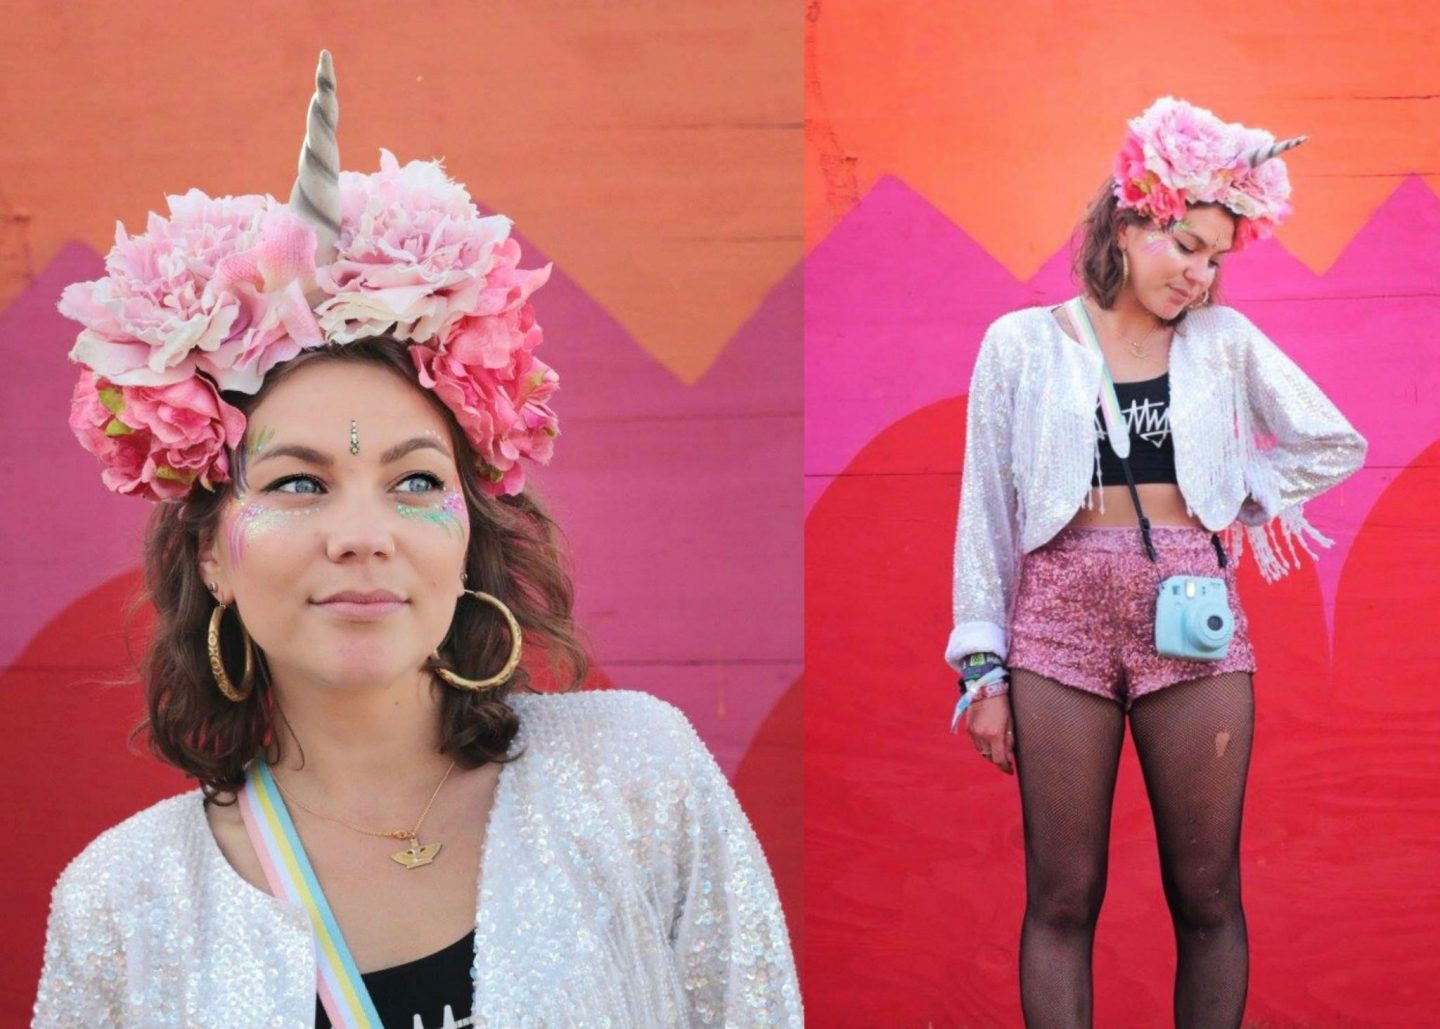 Sequin outfit & pink floral unicorn crown at Shambala festival 2015